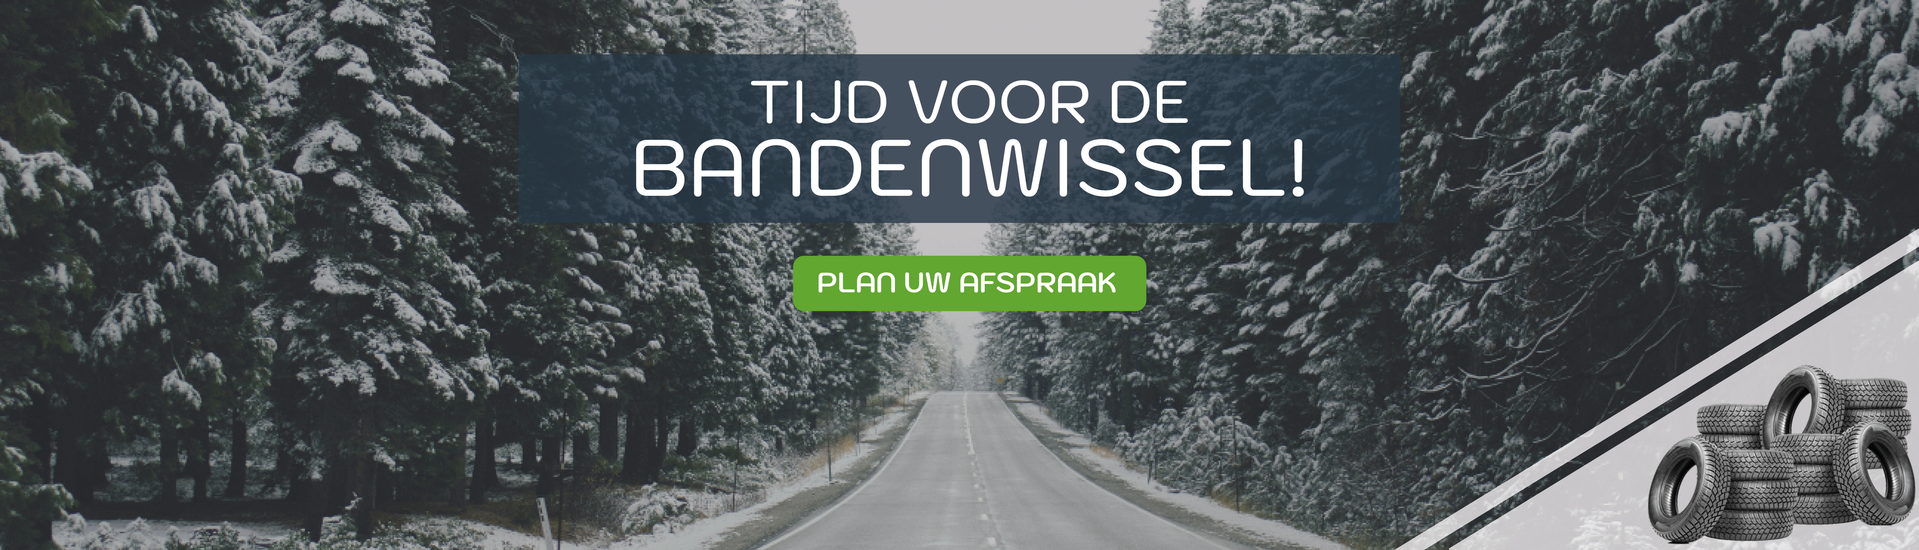 Winterbandenwissel 10-2020 websiteheader